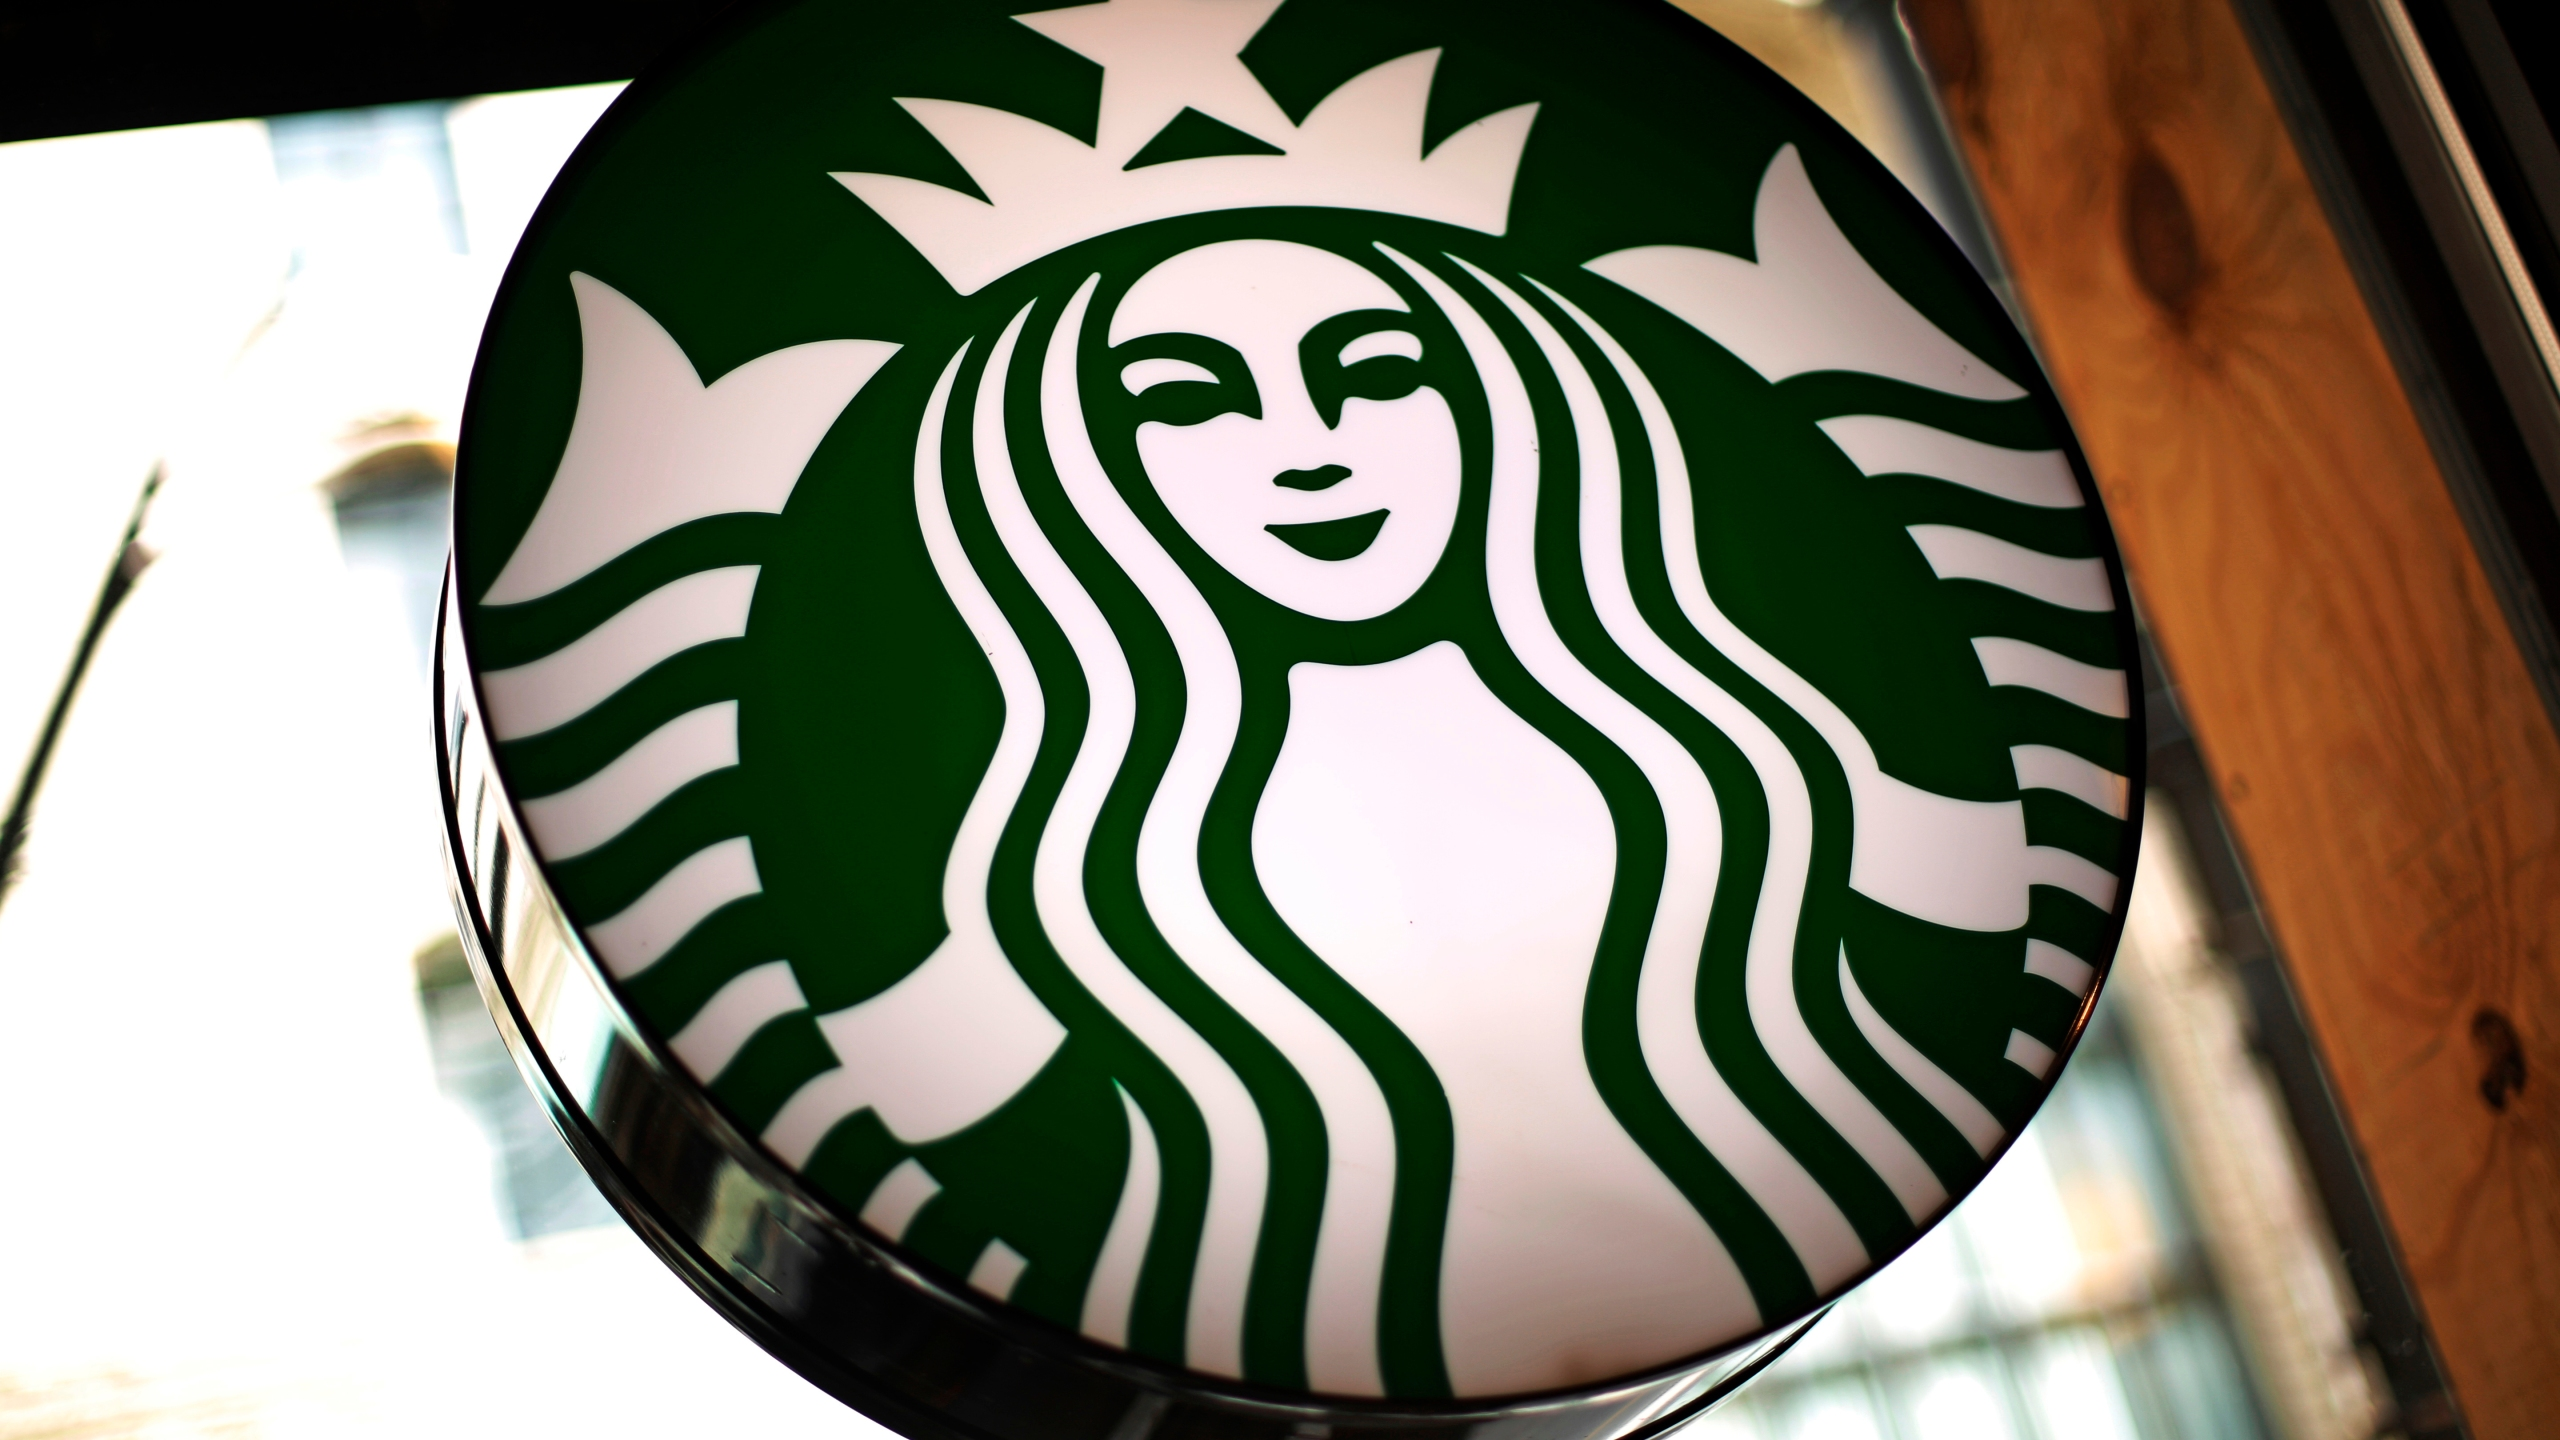 starbucks police officers asked to leave